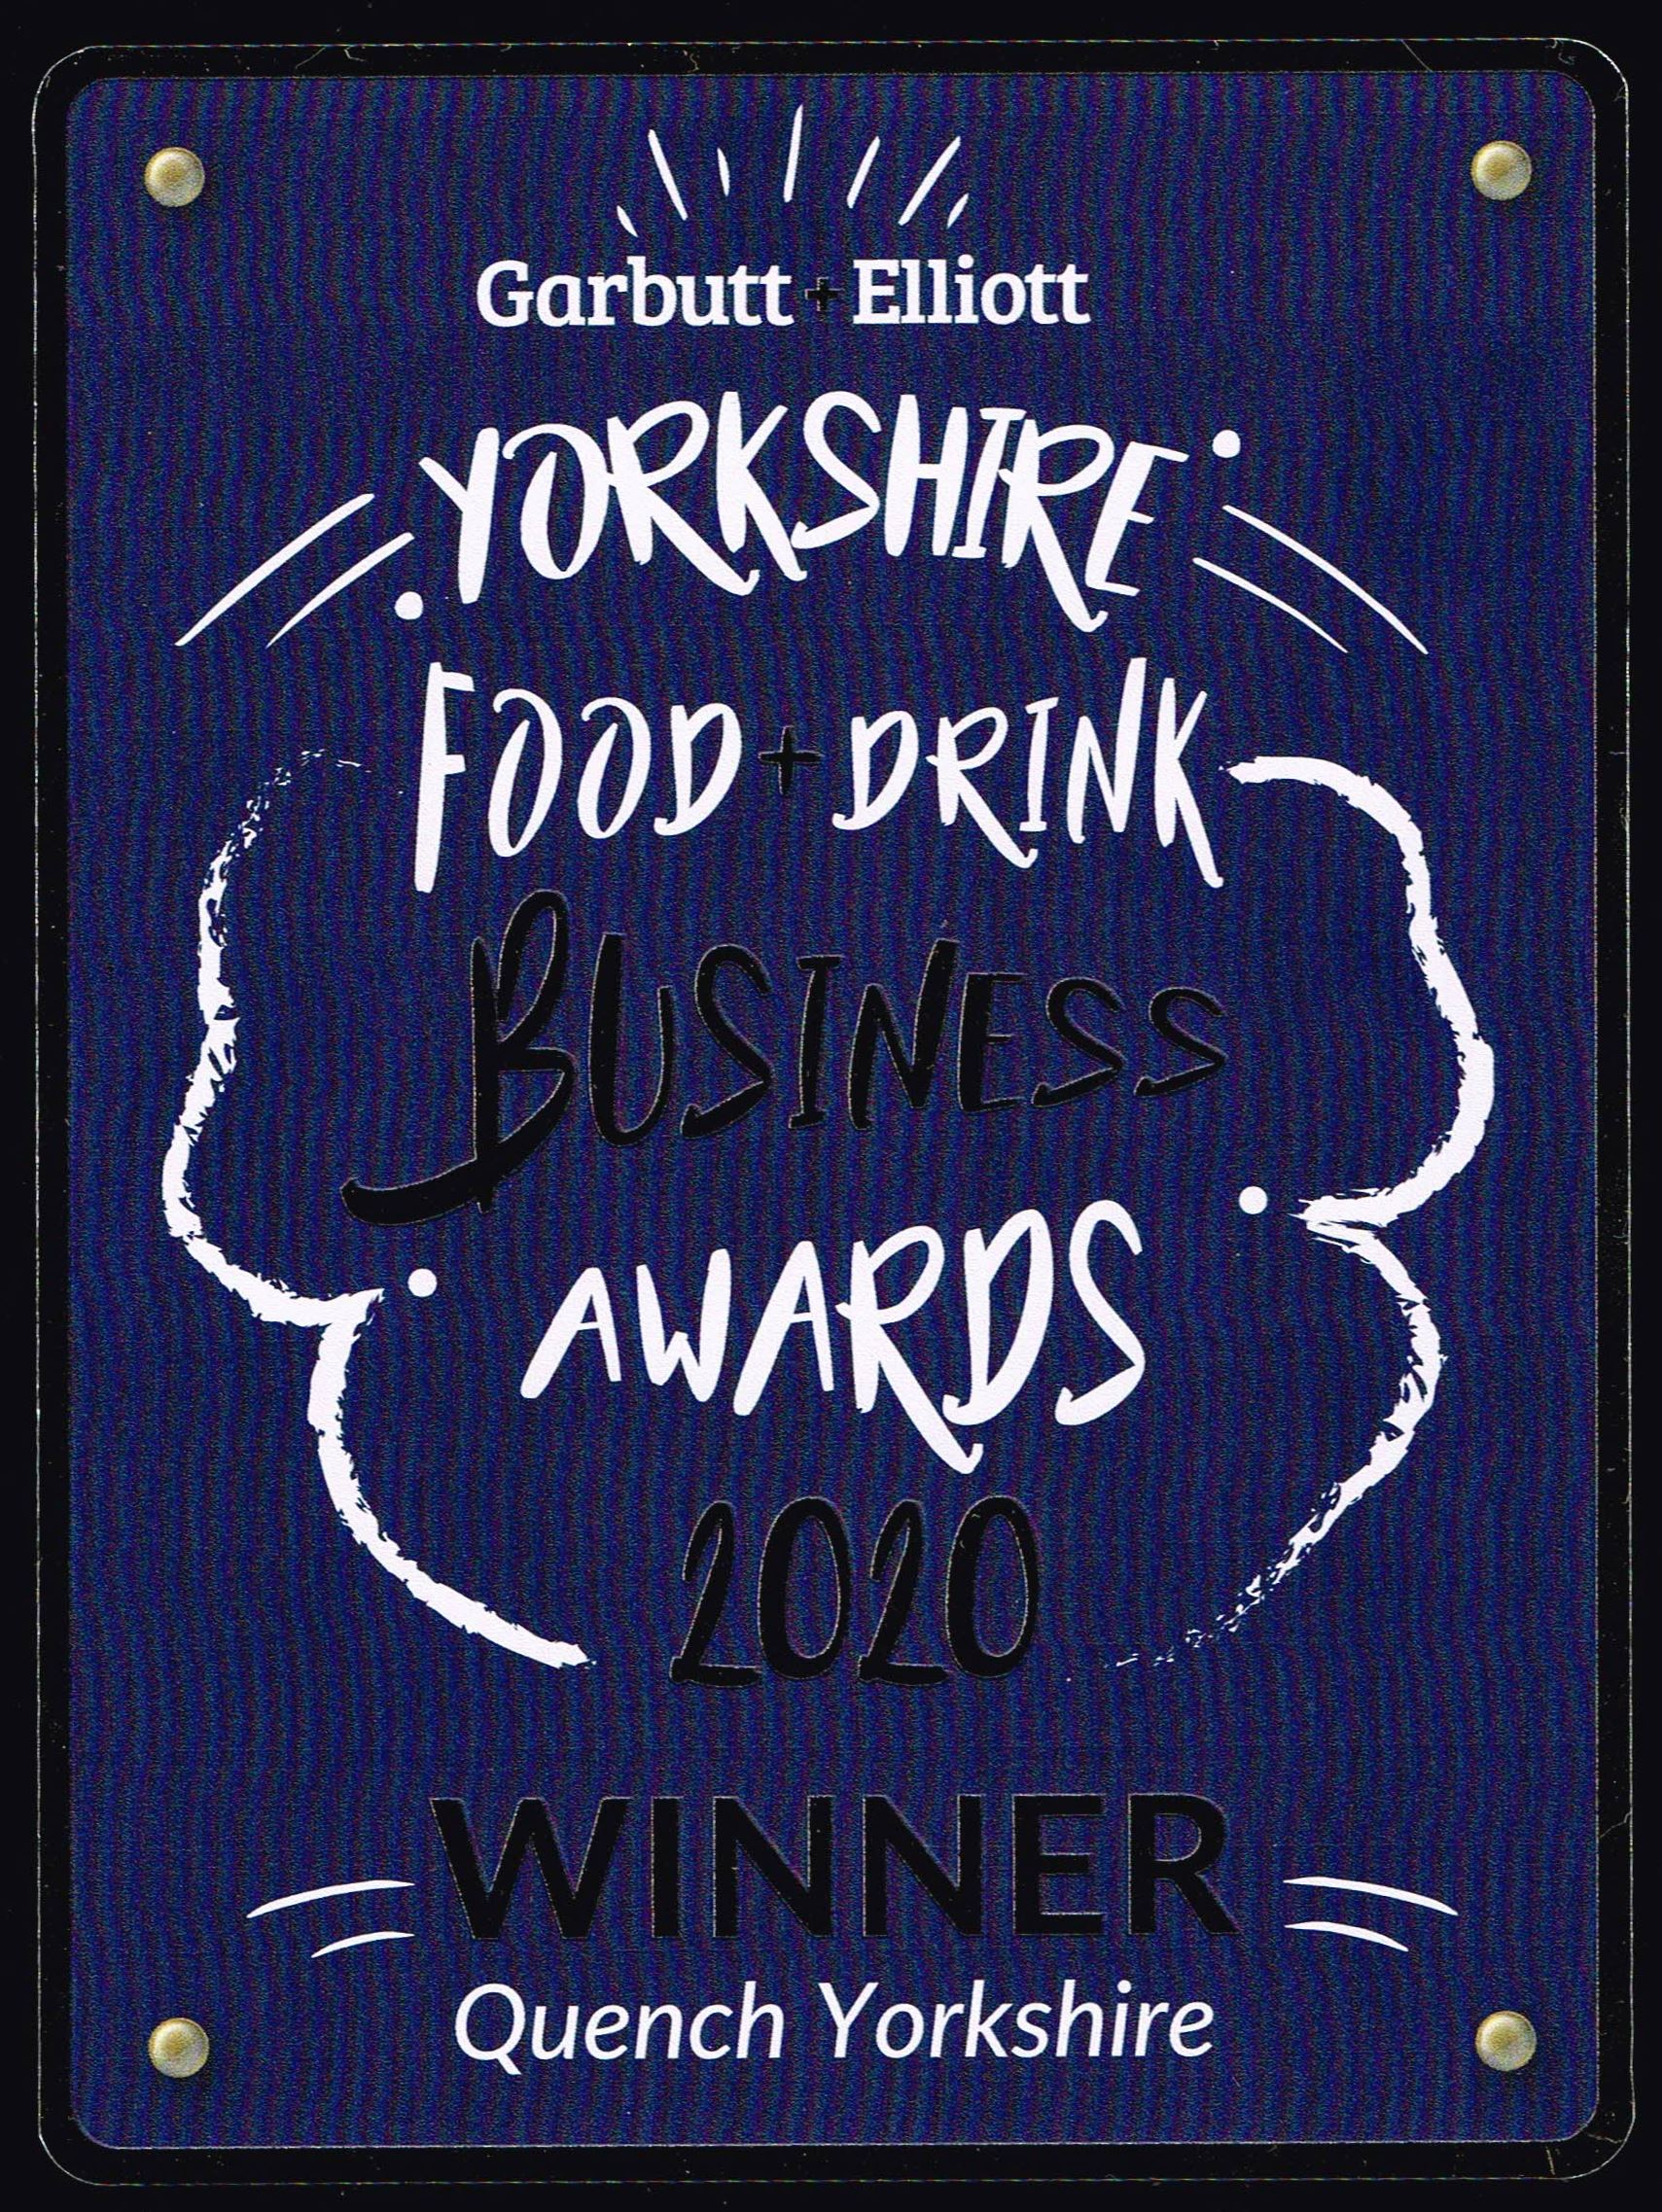 Garbutt&Elliott Food & Drink Awards 2020 Winner Quench